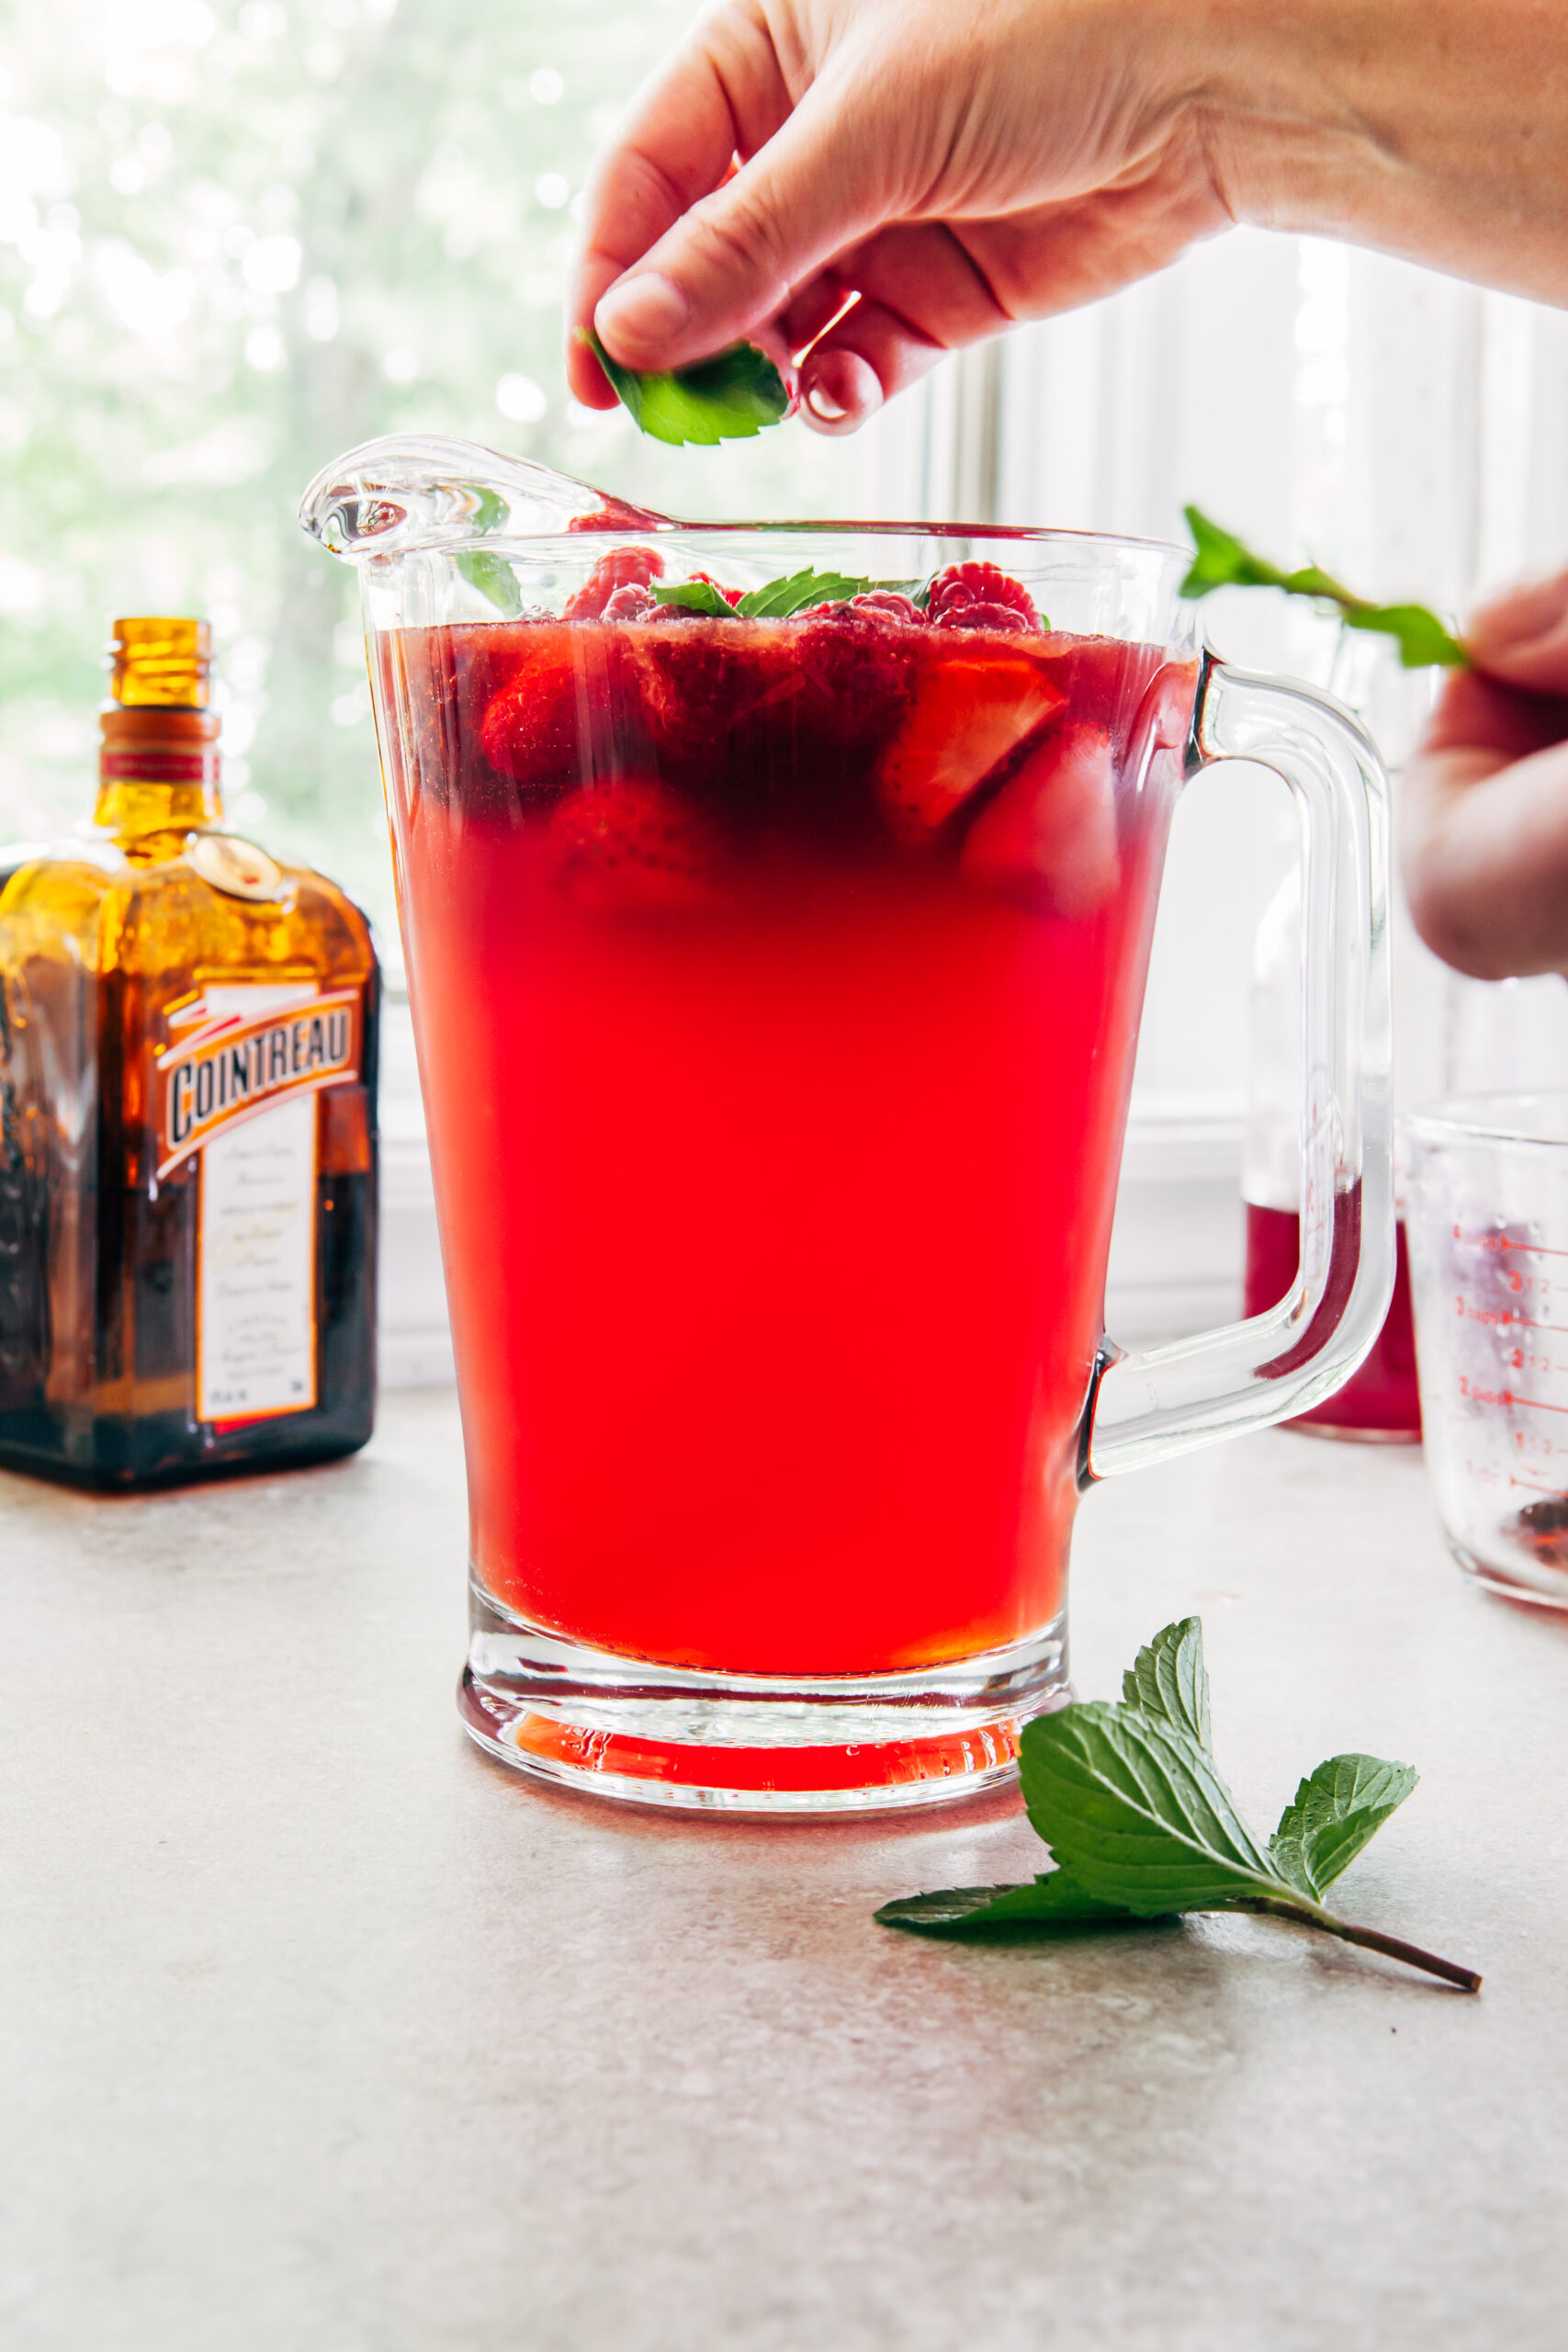 A woman's hands tearing mint leaves from the stalks to add to a pitcher of strawberry lemonade sangria.